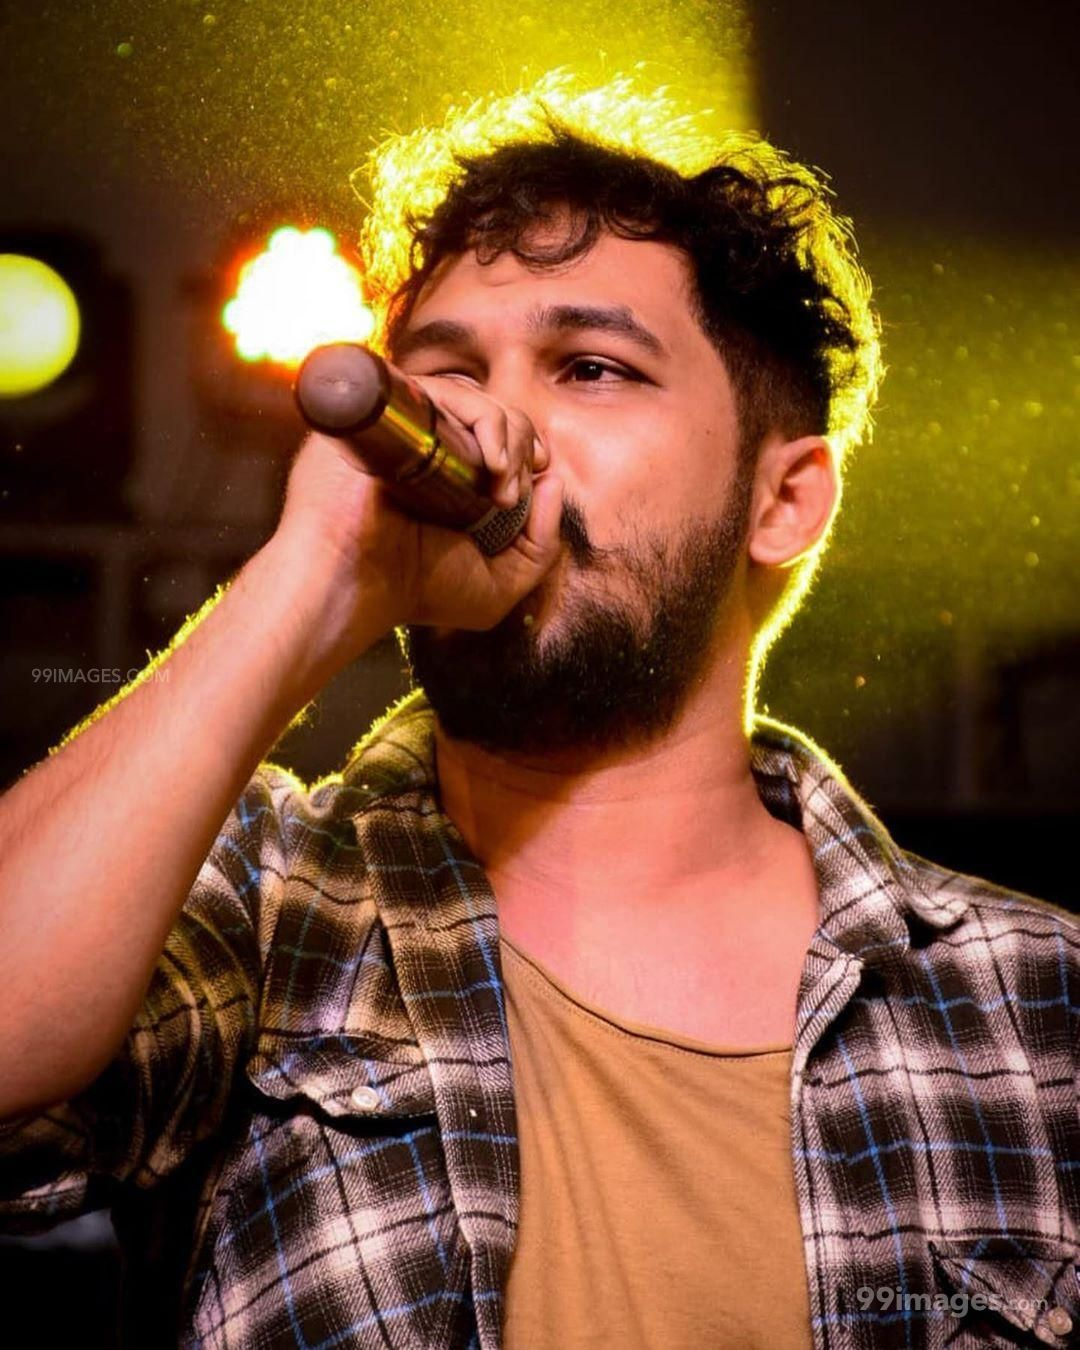 70 Hiphop Tamizha Hd Wallpapers Desktop Background Android Iphone 1080p 4k 1080x1350 2021